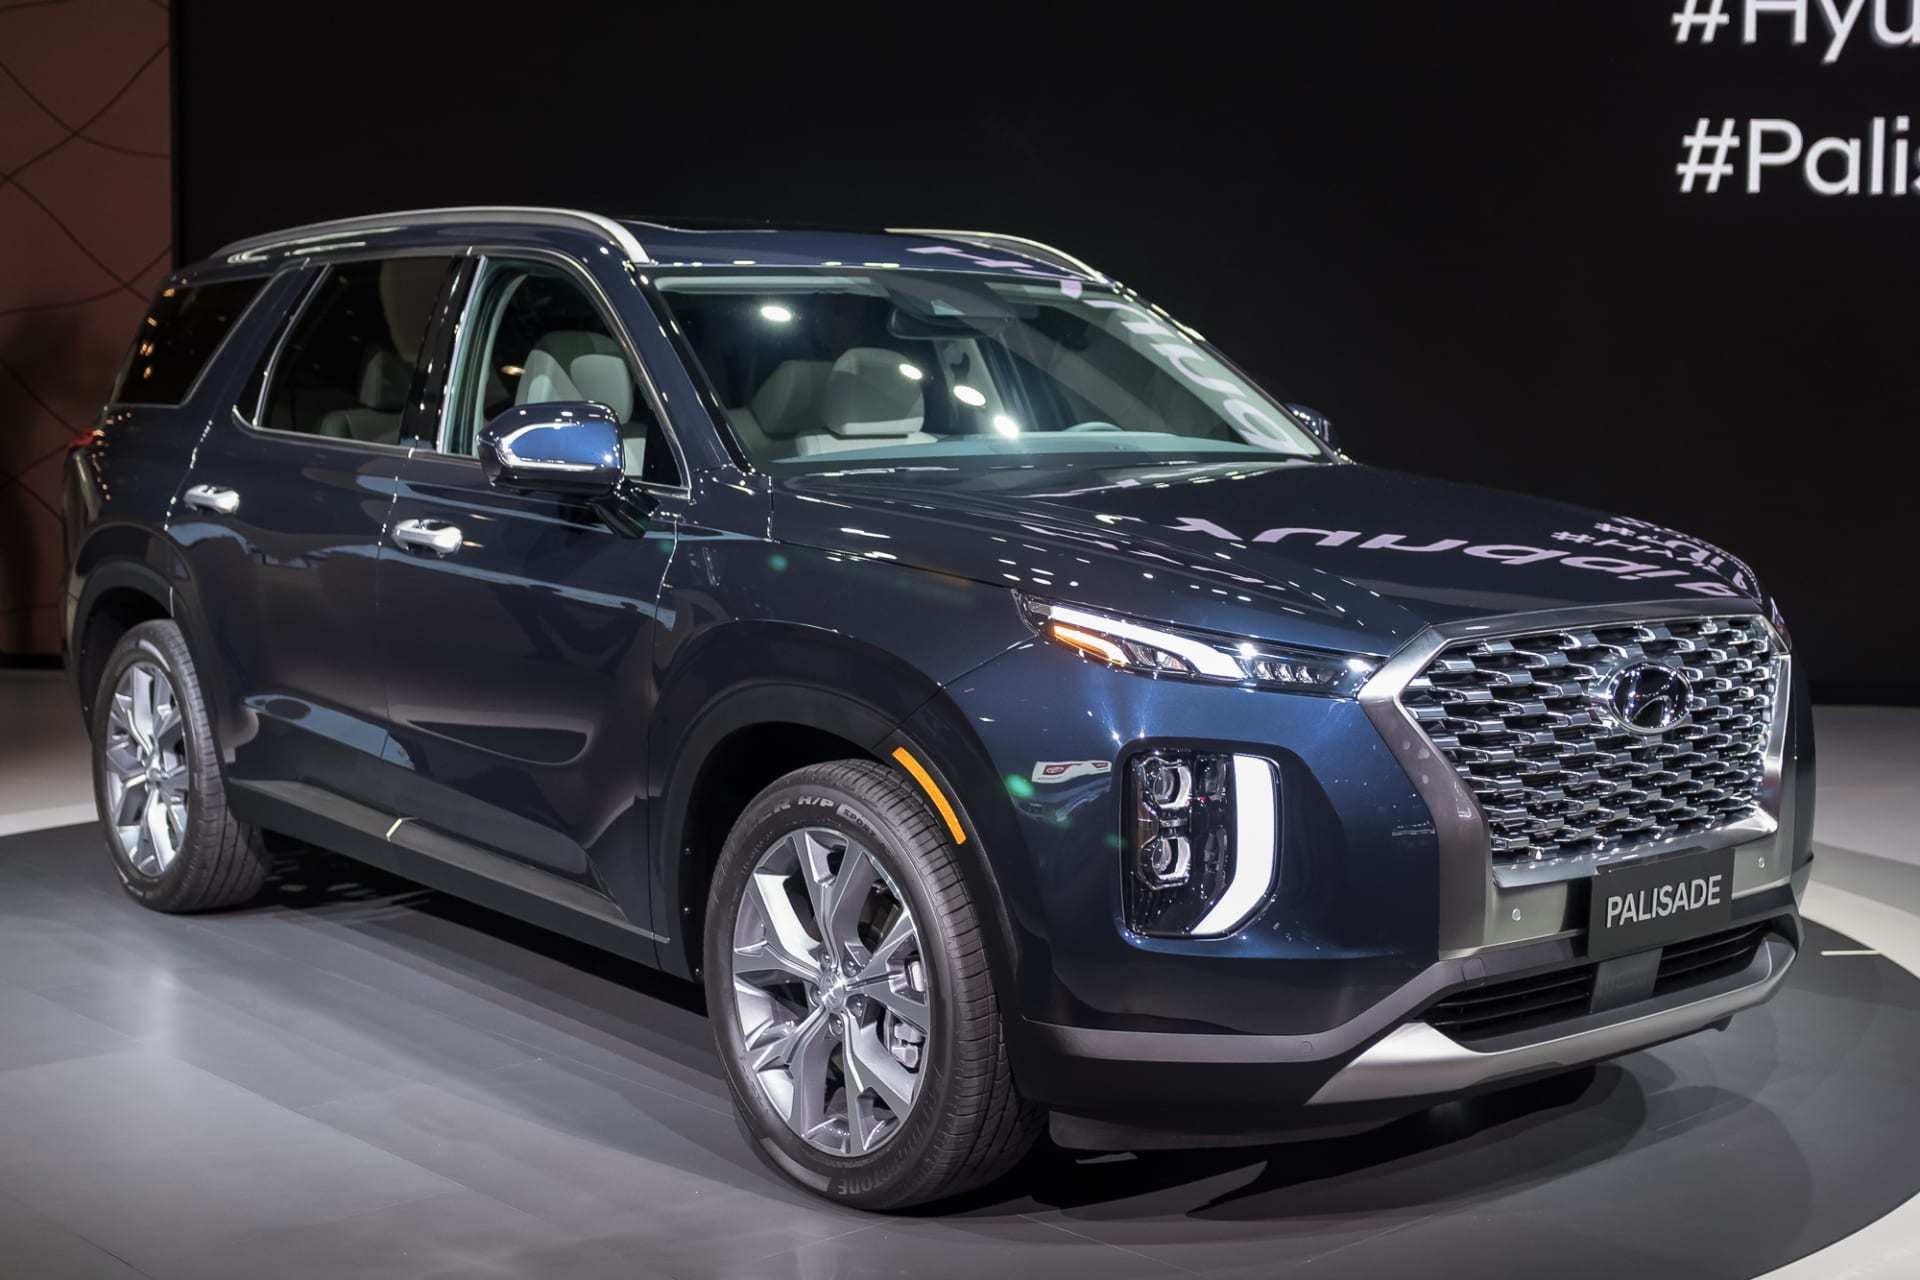 52 Gallery of Hyundai Full Size Suv 2020 Prices for Hyundai Full Size Suv 2020